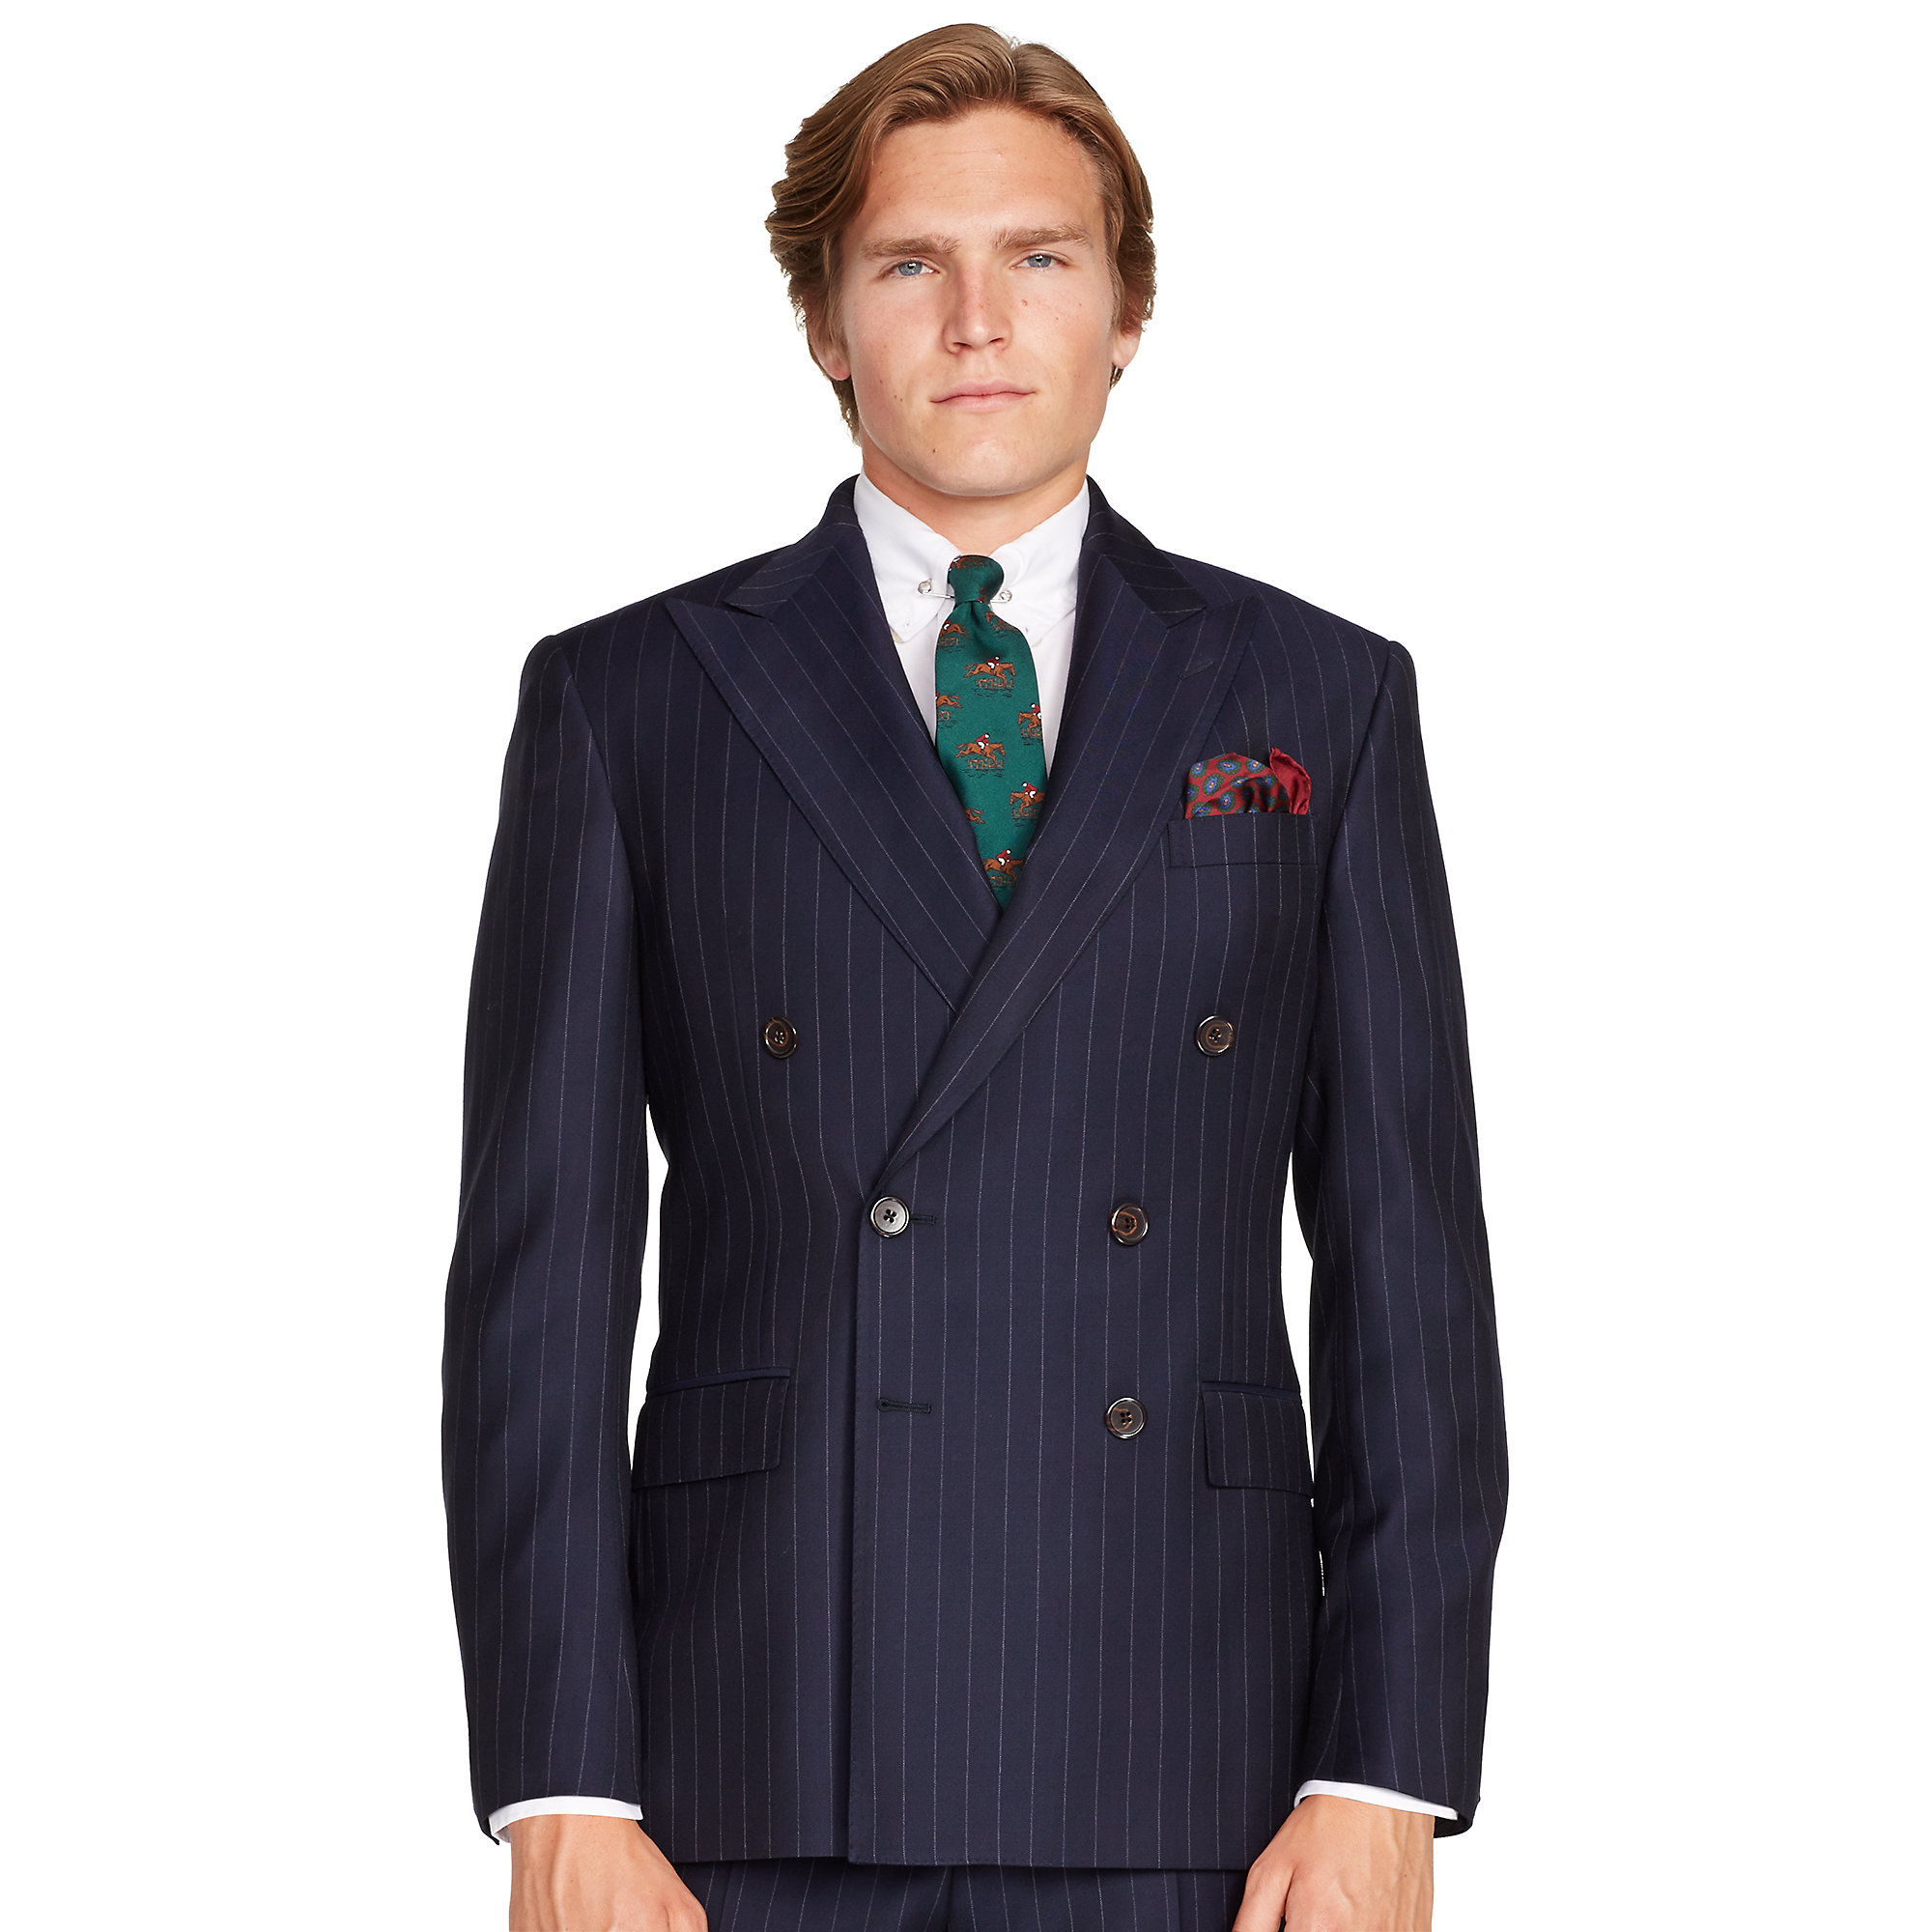 https://cdna.lystit.com/photos/6701-2014/10/21/polo-ralph-lauren-blue-bedford-double-breasted-suit-product-1-24394945-5-766990015-normal.jpeg